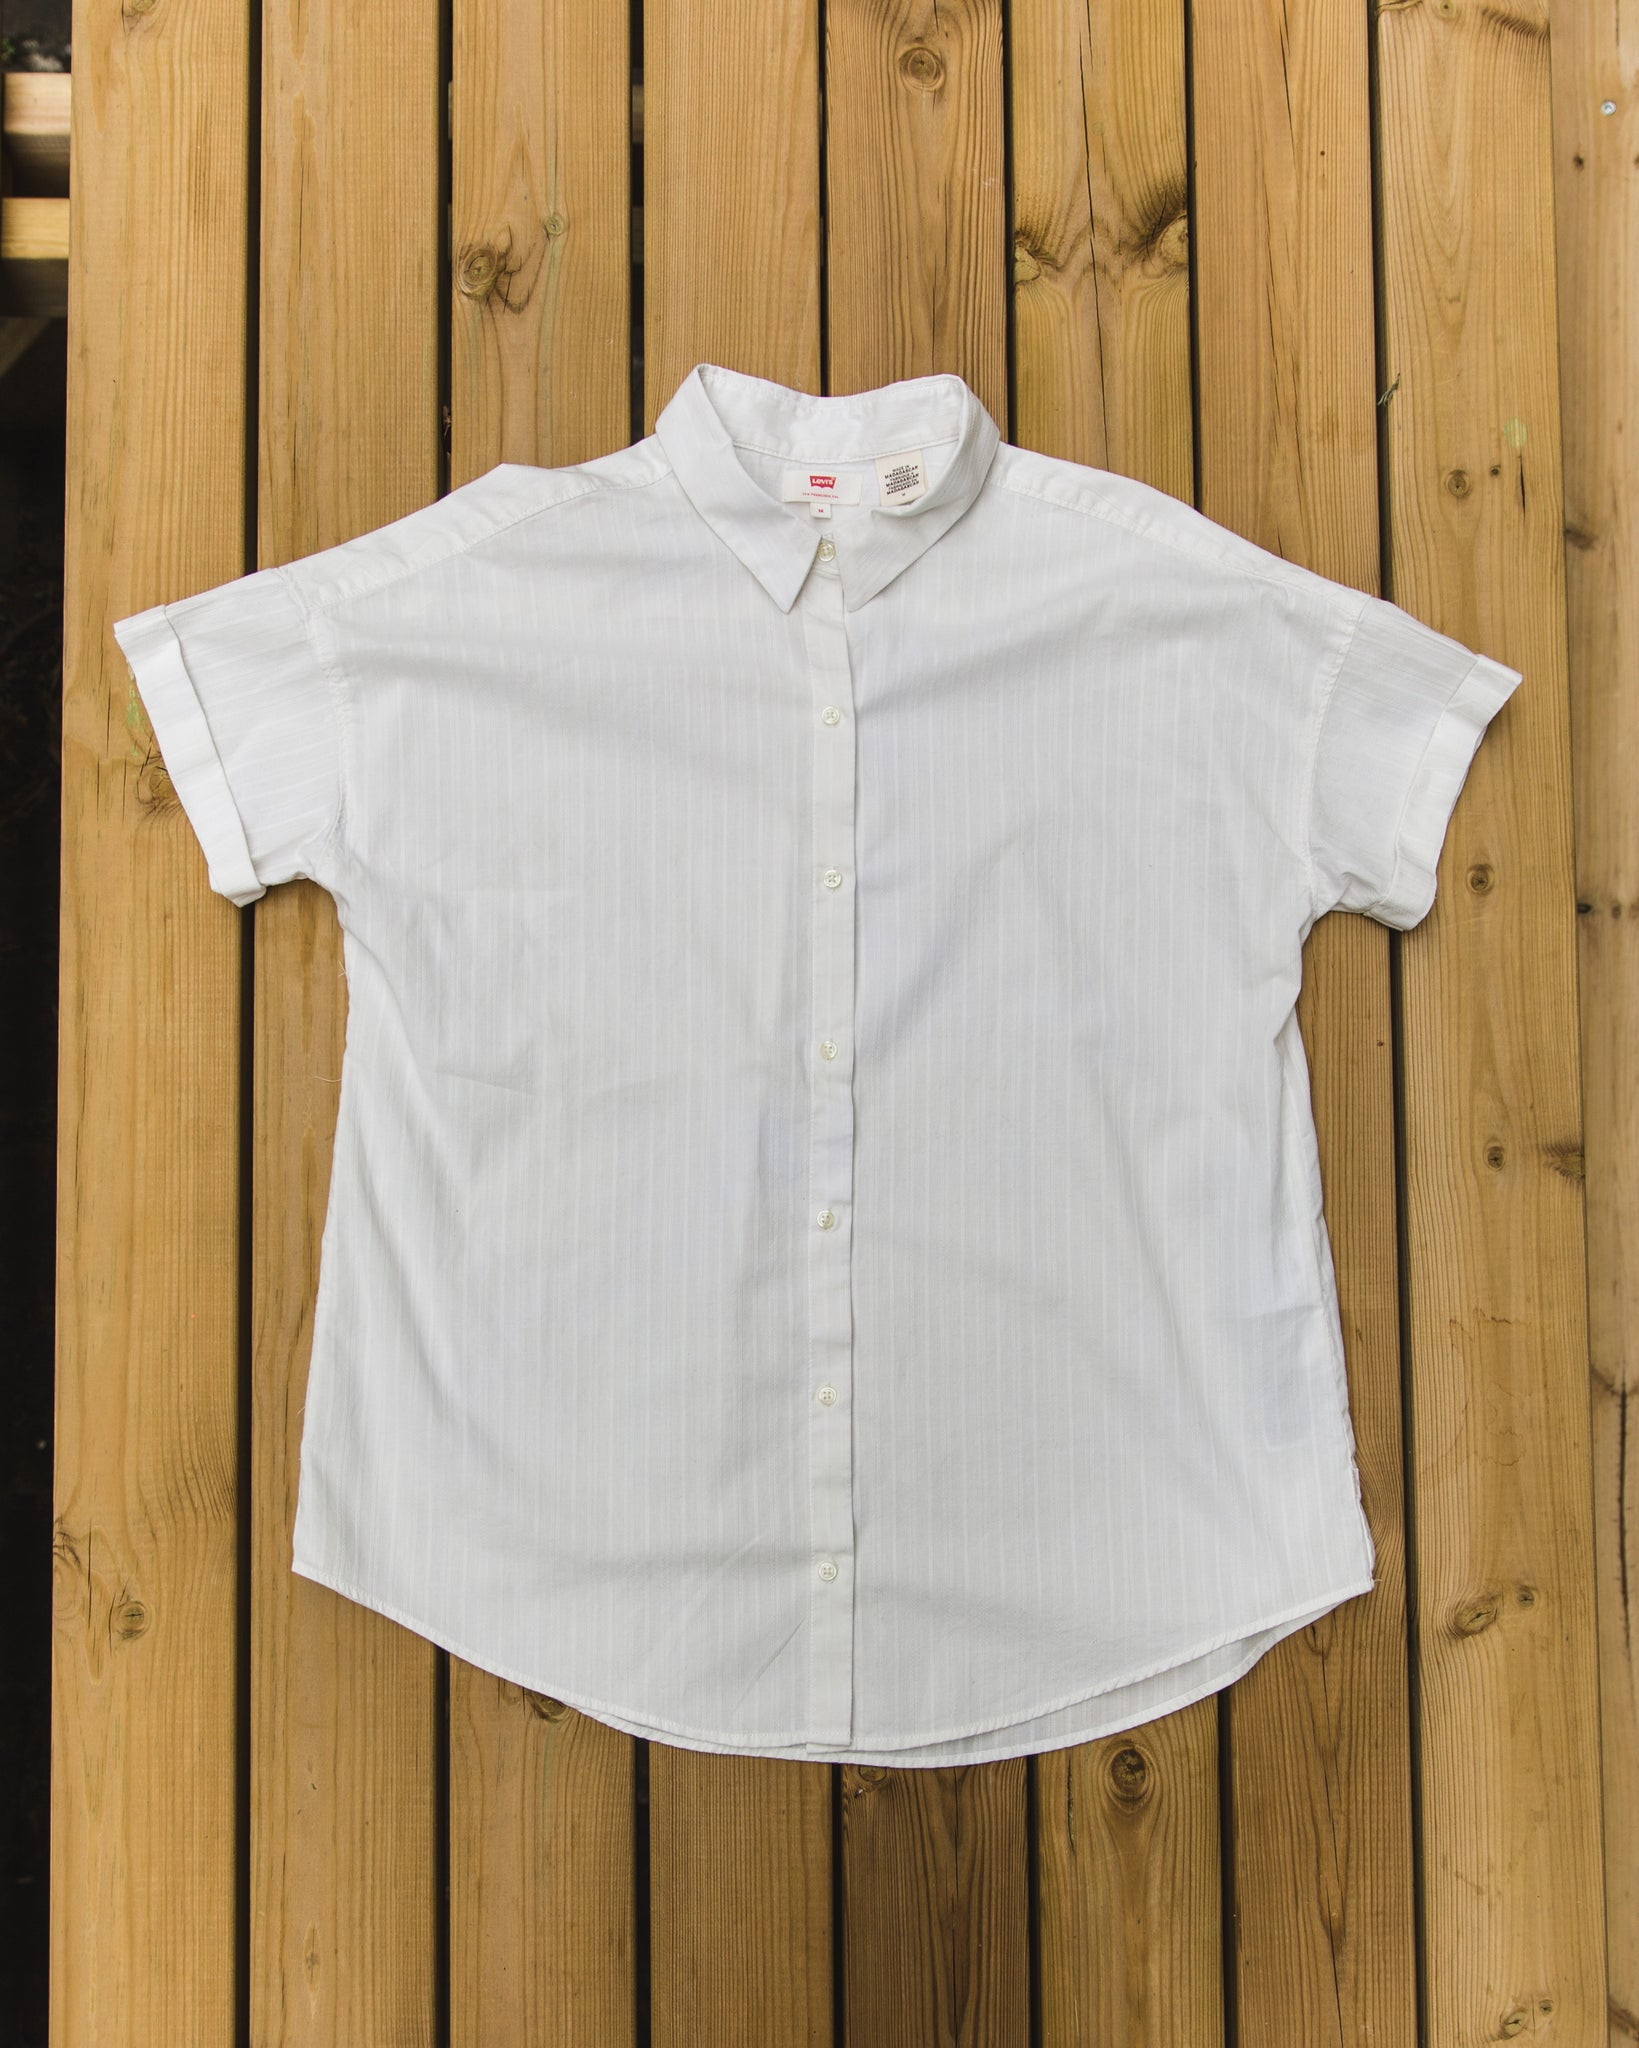 Chemise blanche - Taille M